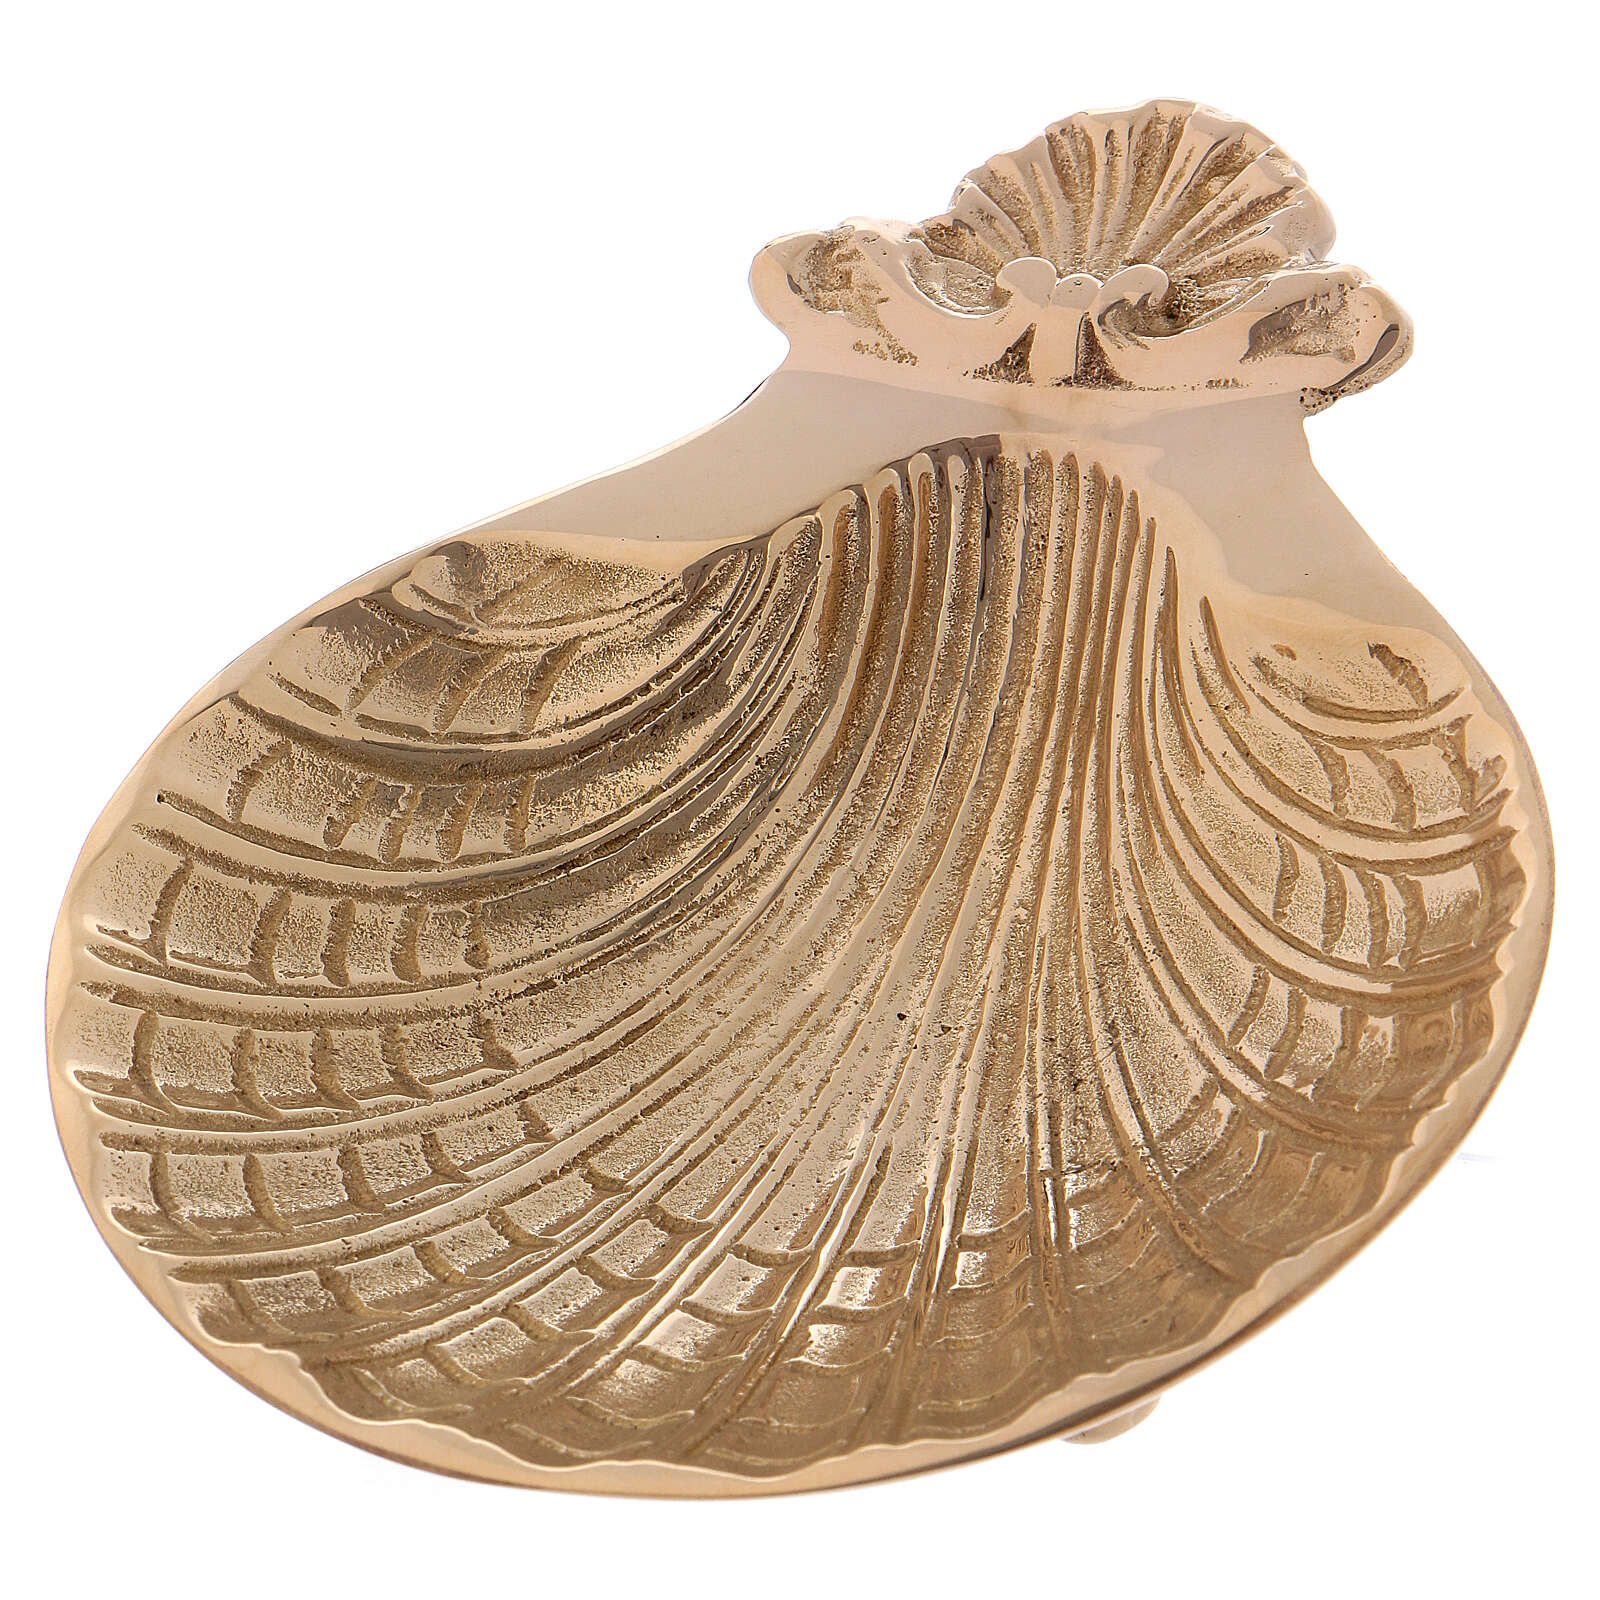 Baptismal shell with three small feet at the base 13x11 cm 3